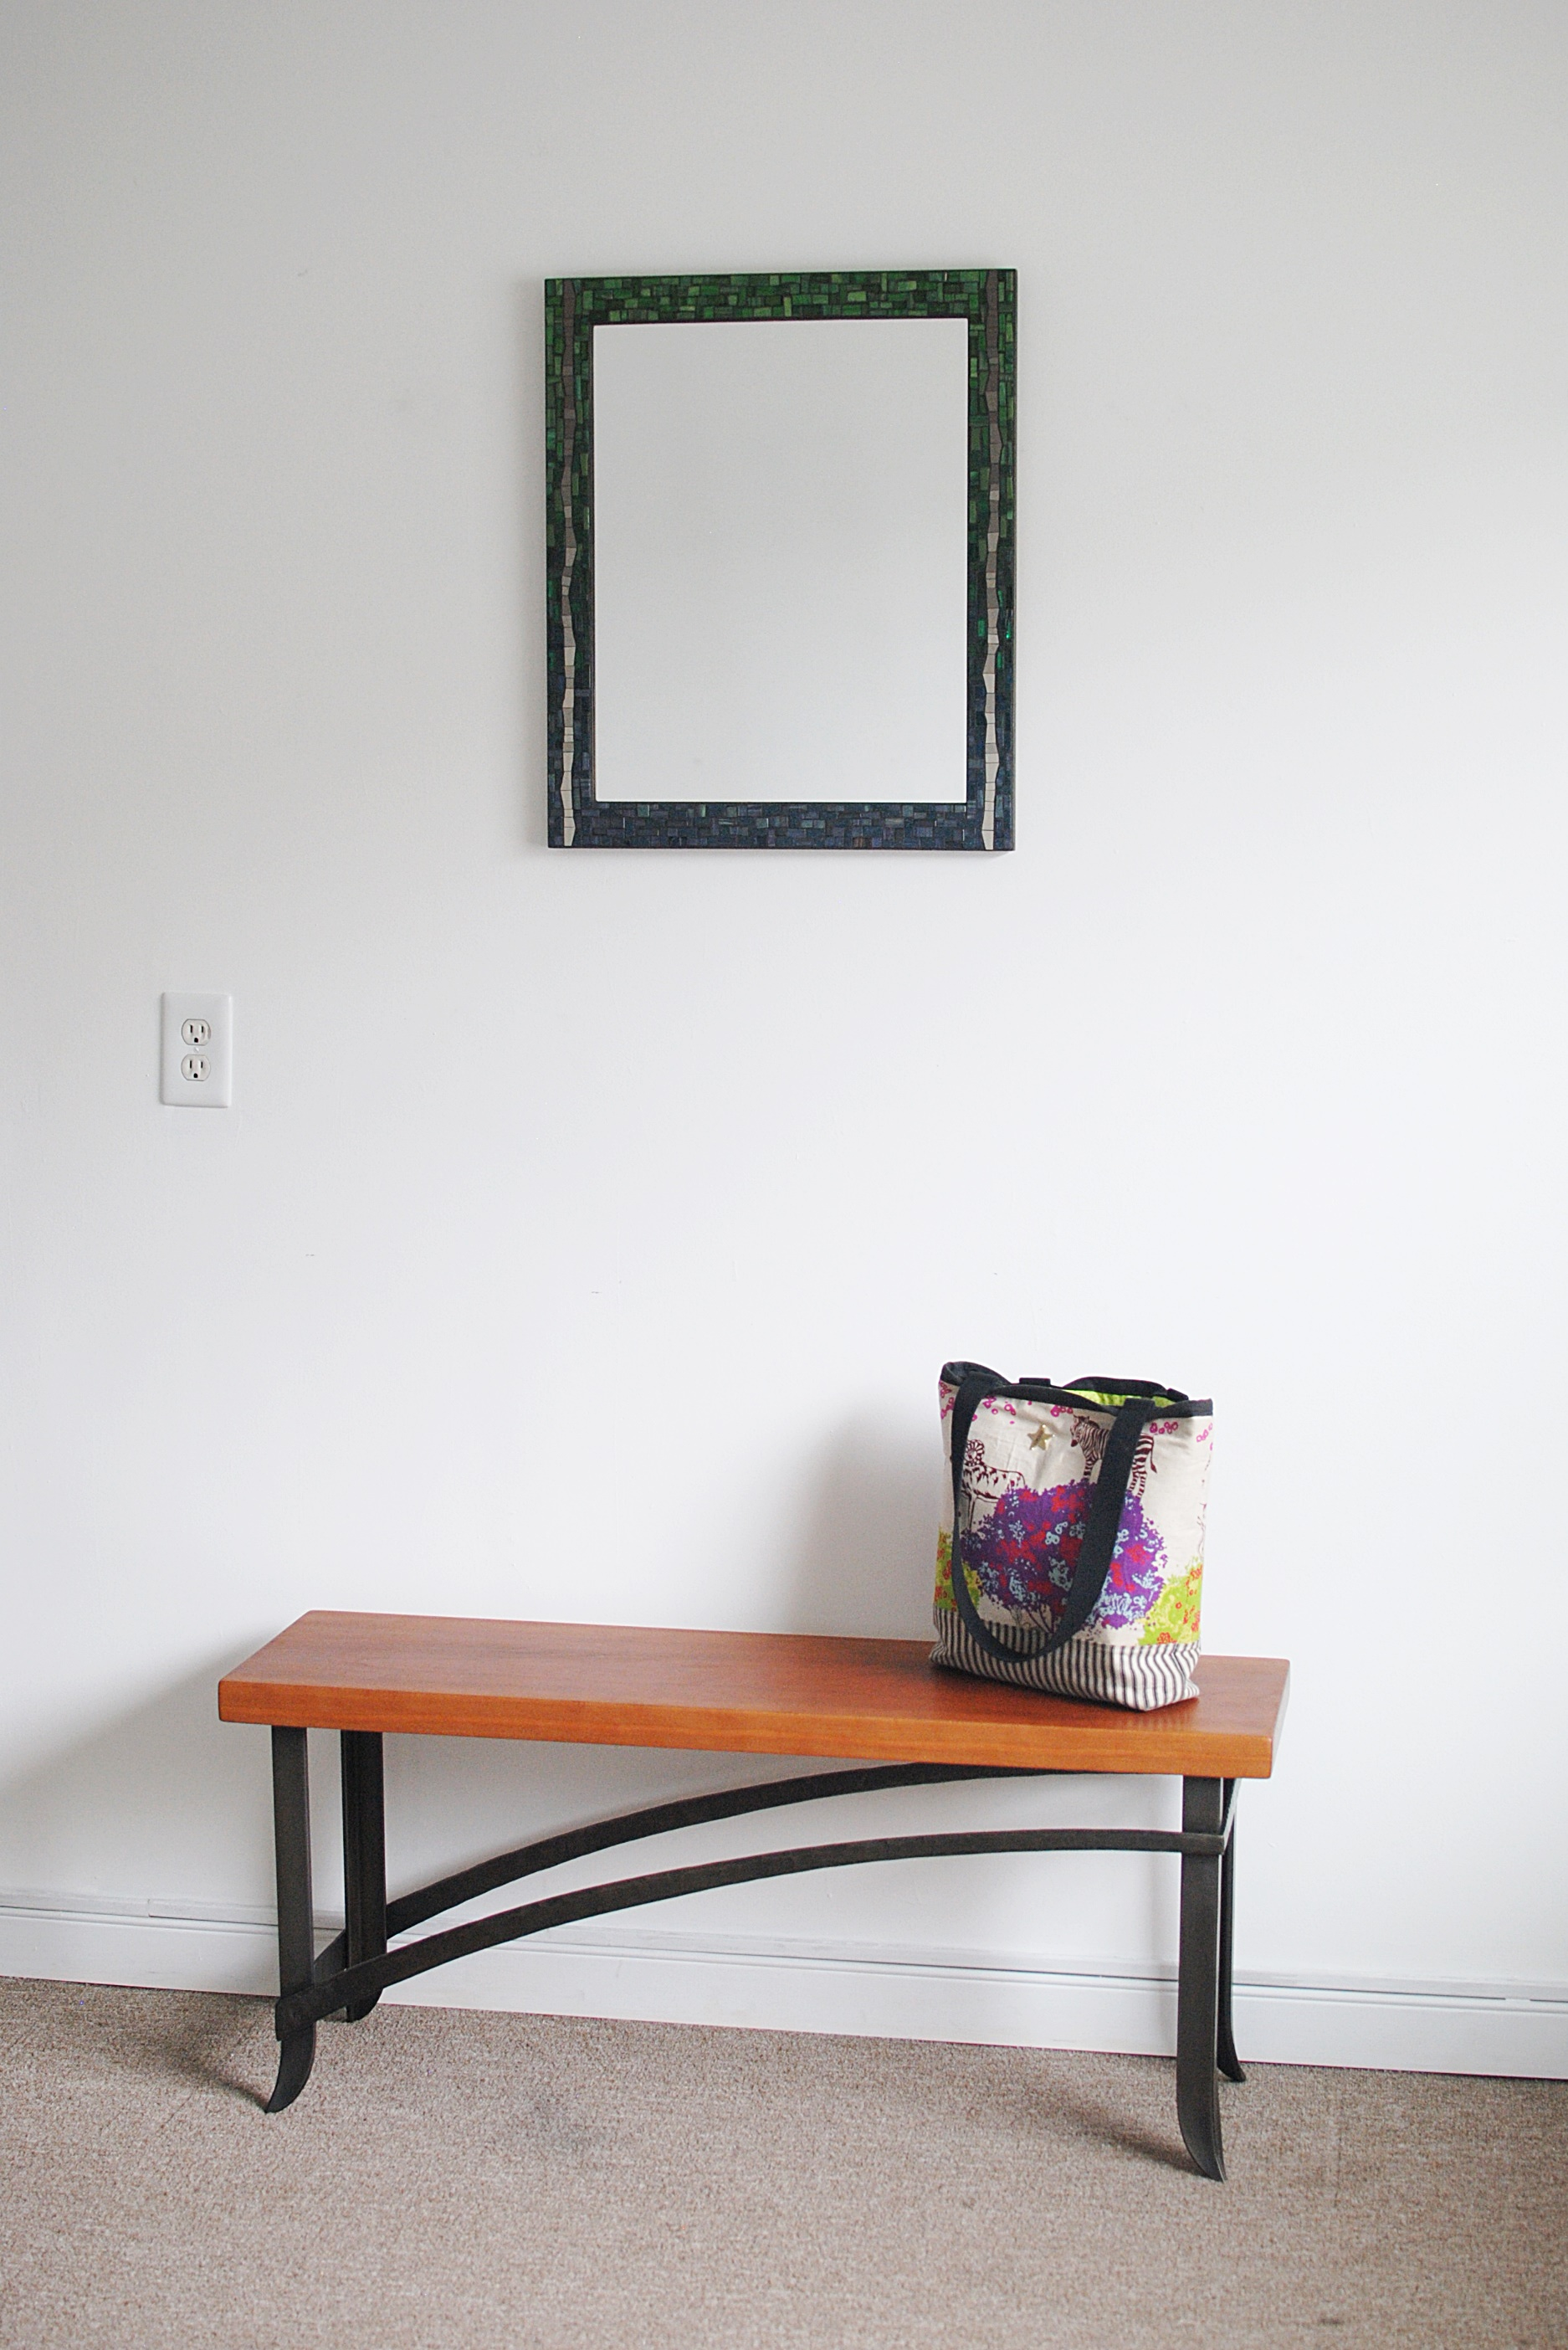 Forged bench with mosaic mirror